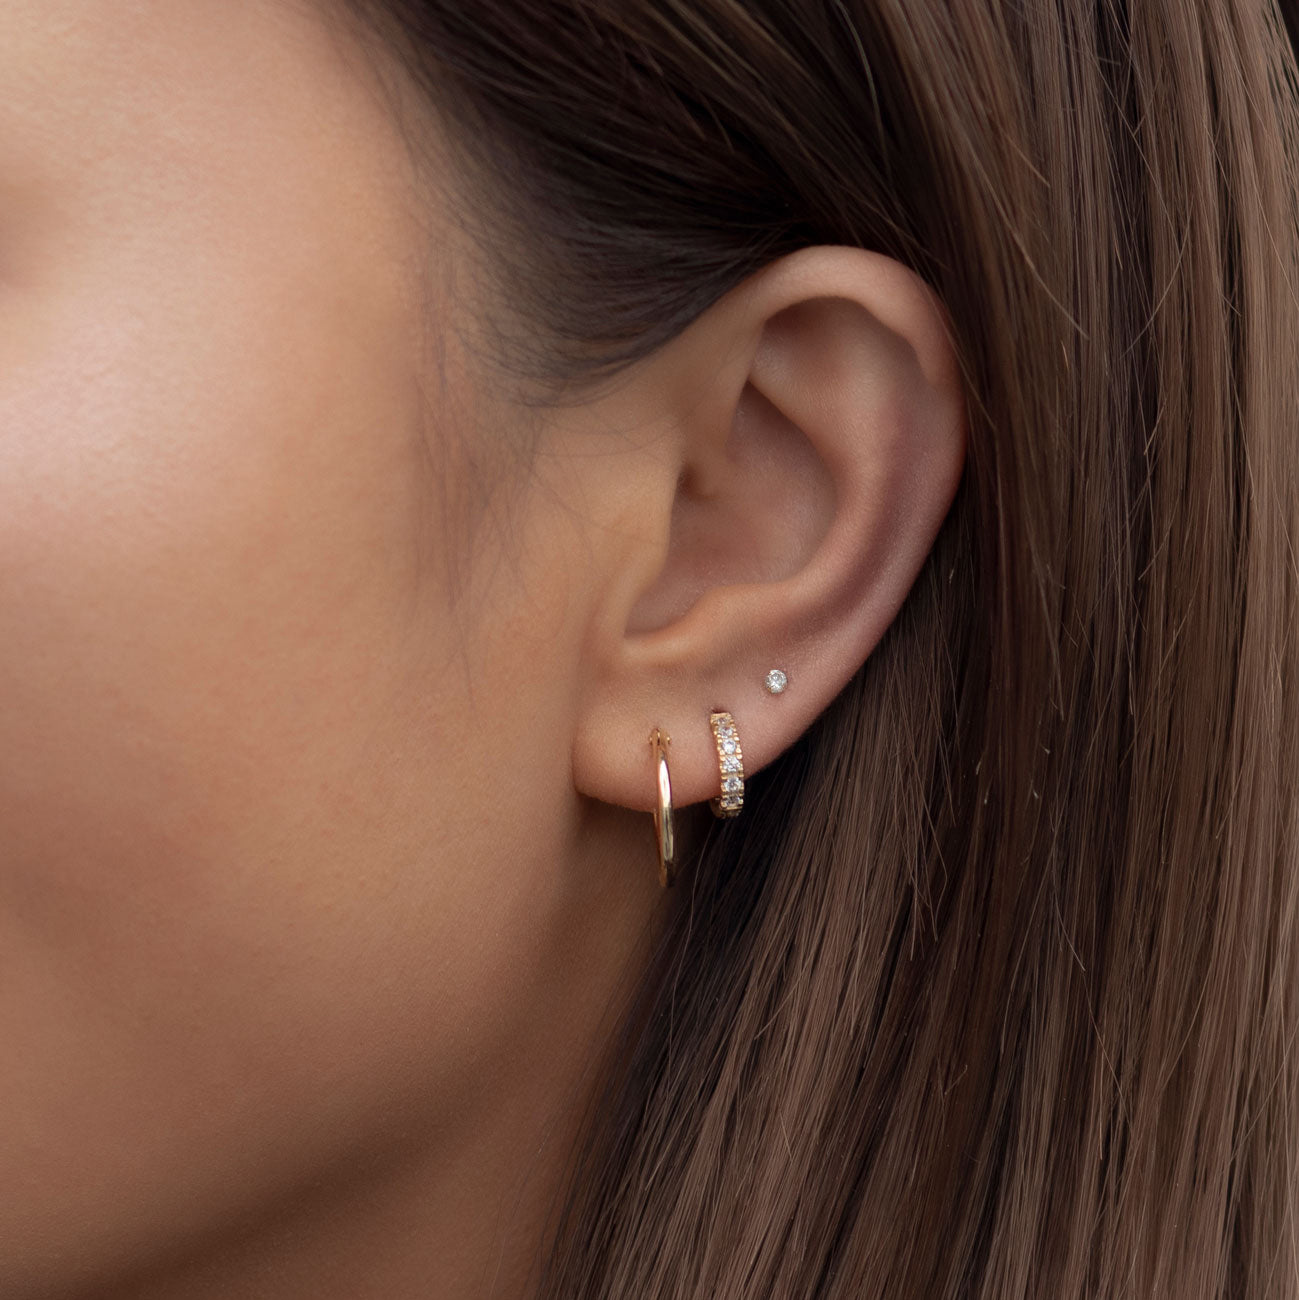 caption:Model wearing 2mm on third hole